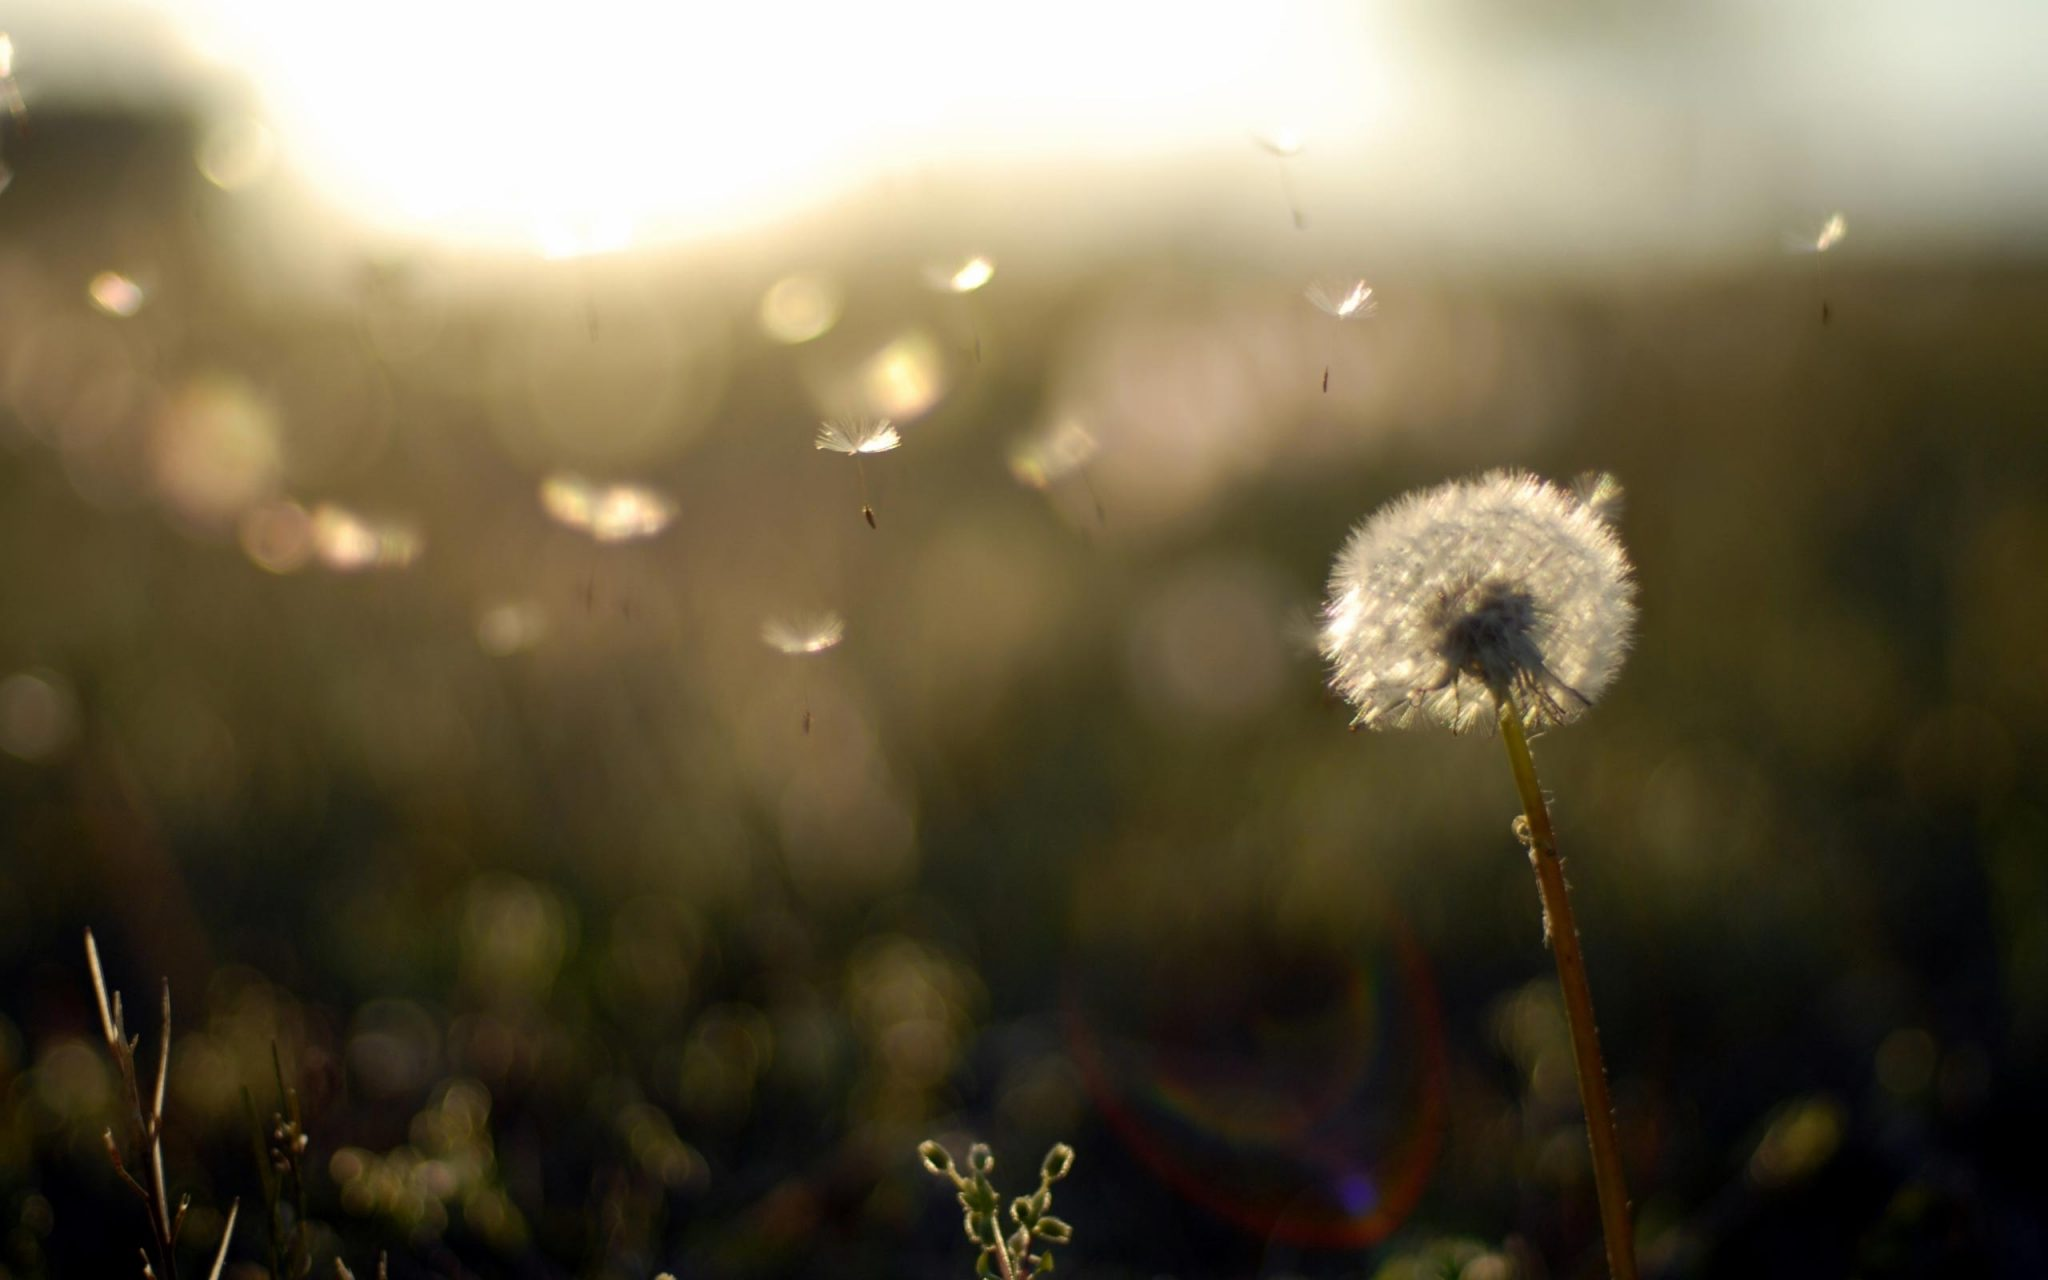 Dandelion-Background-Wallpapers-HD-Free-Download-03